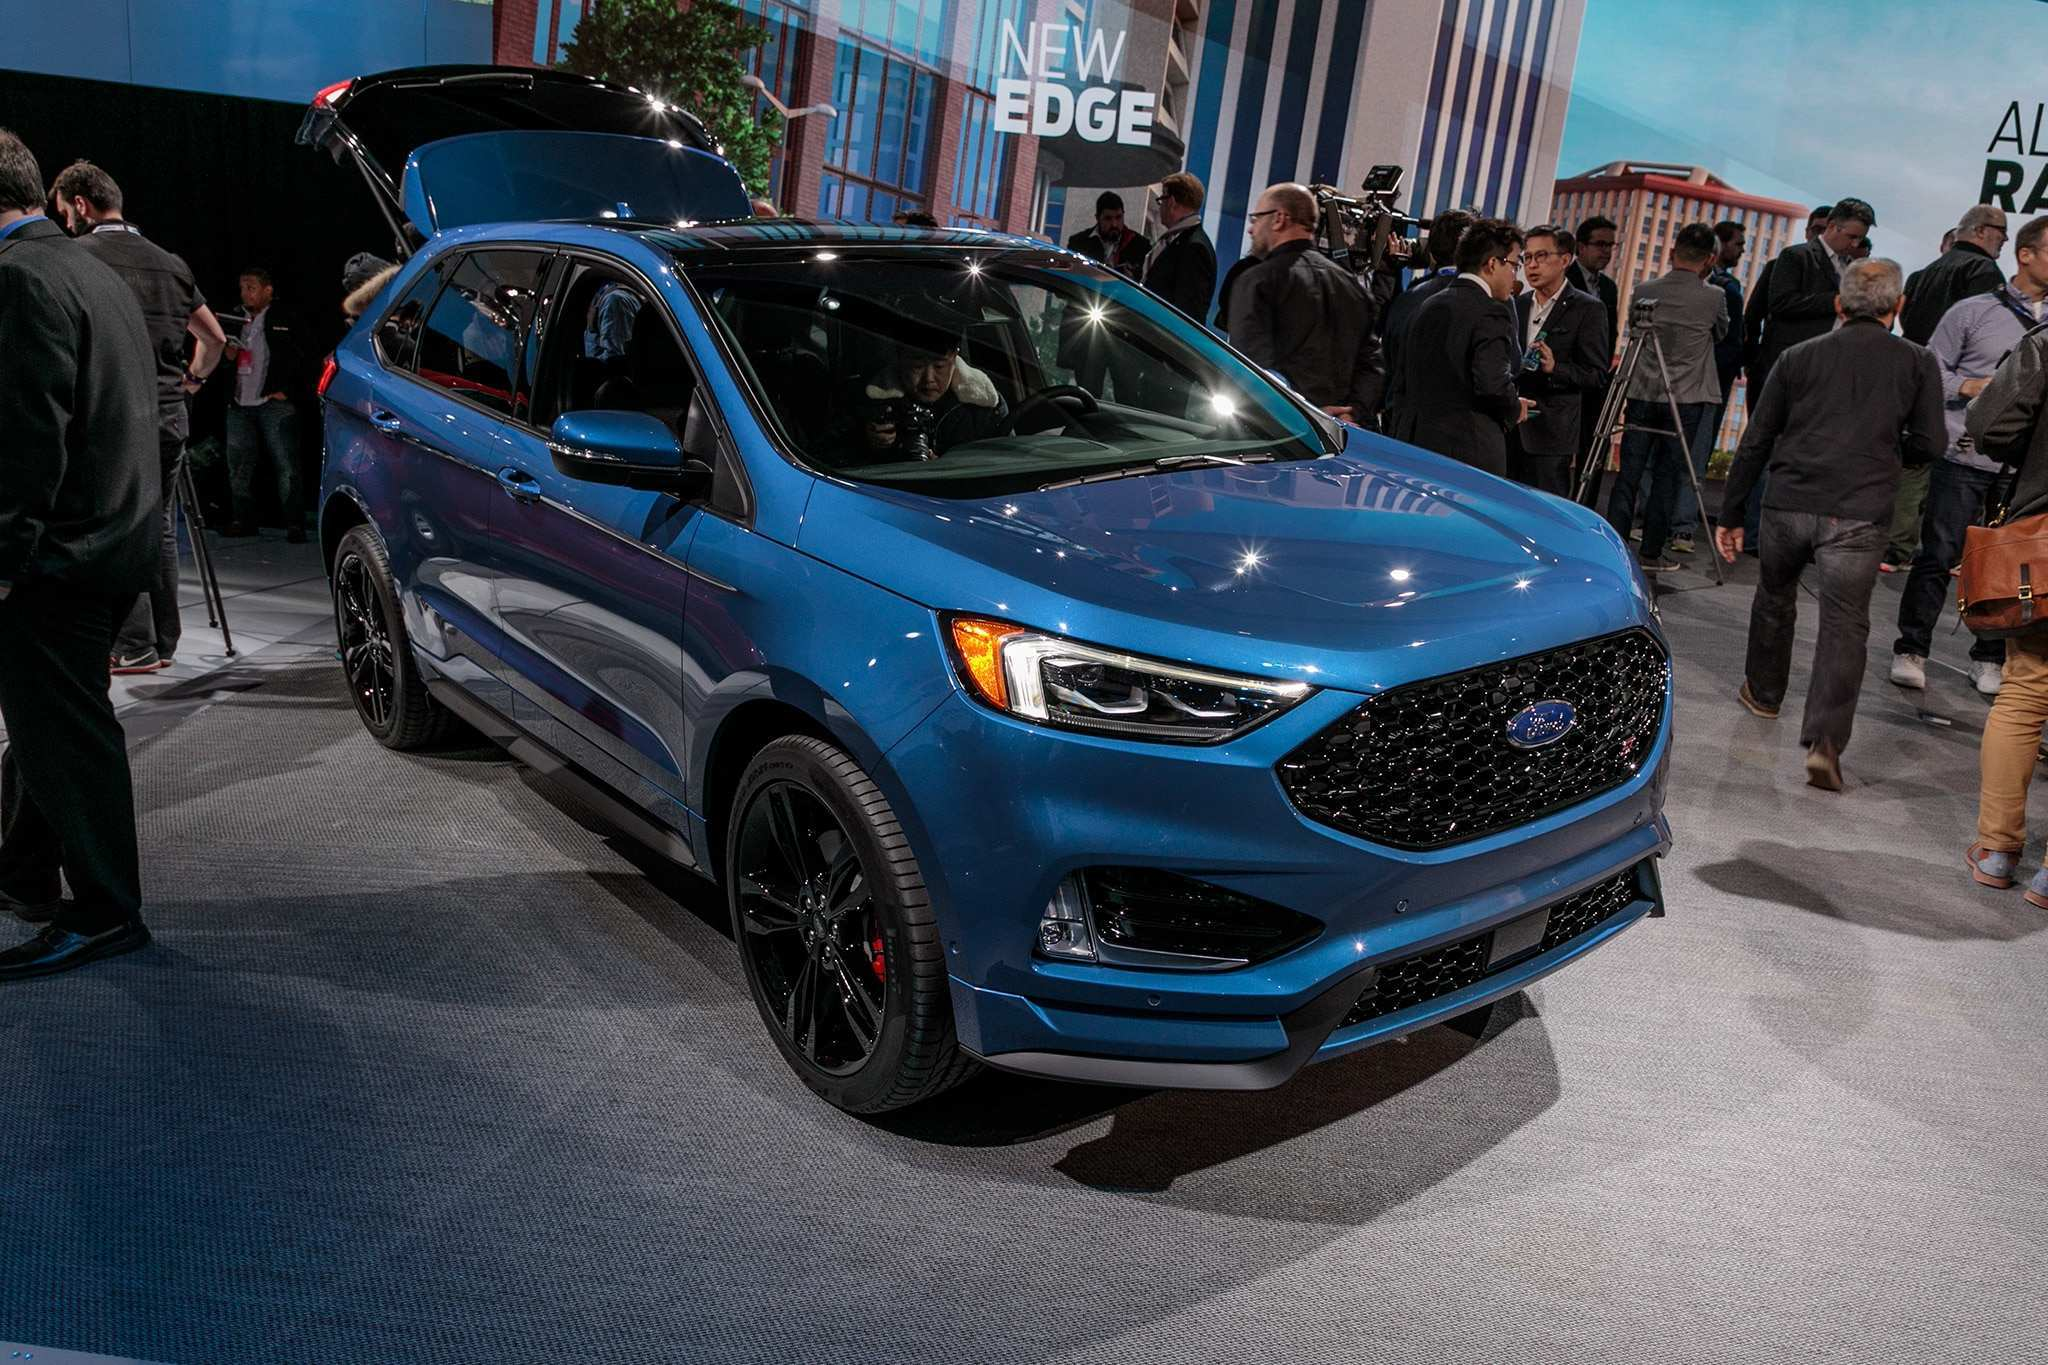 28 Concept of 2019 Ford Suv Performance for 2019 Ford Suv